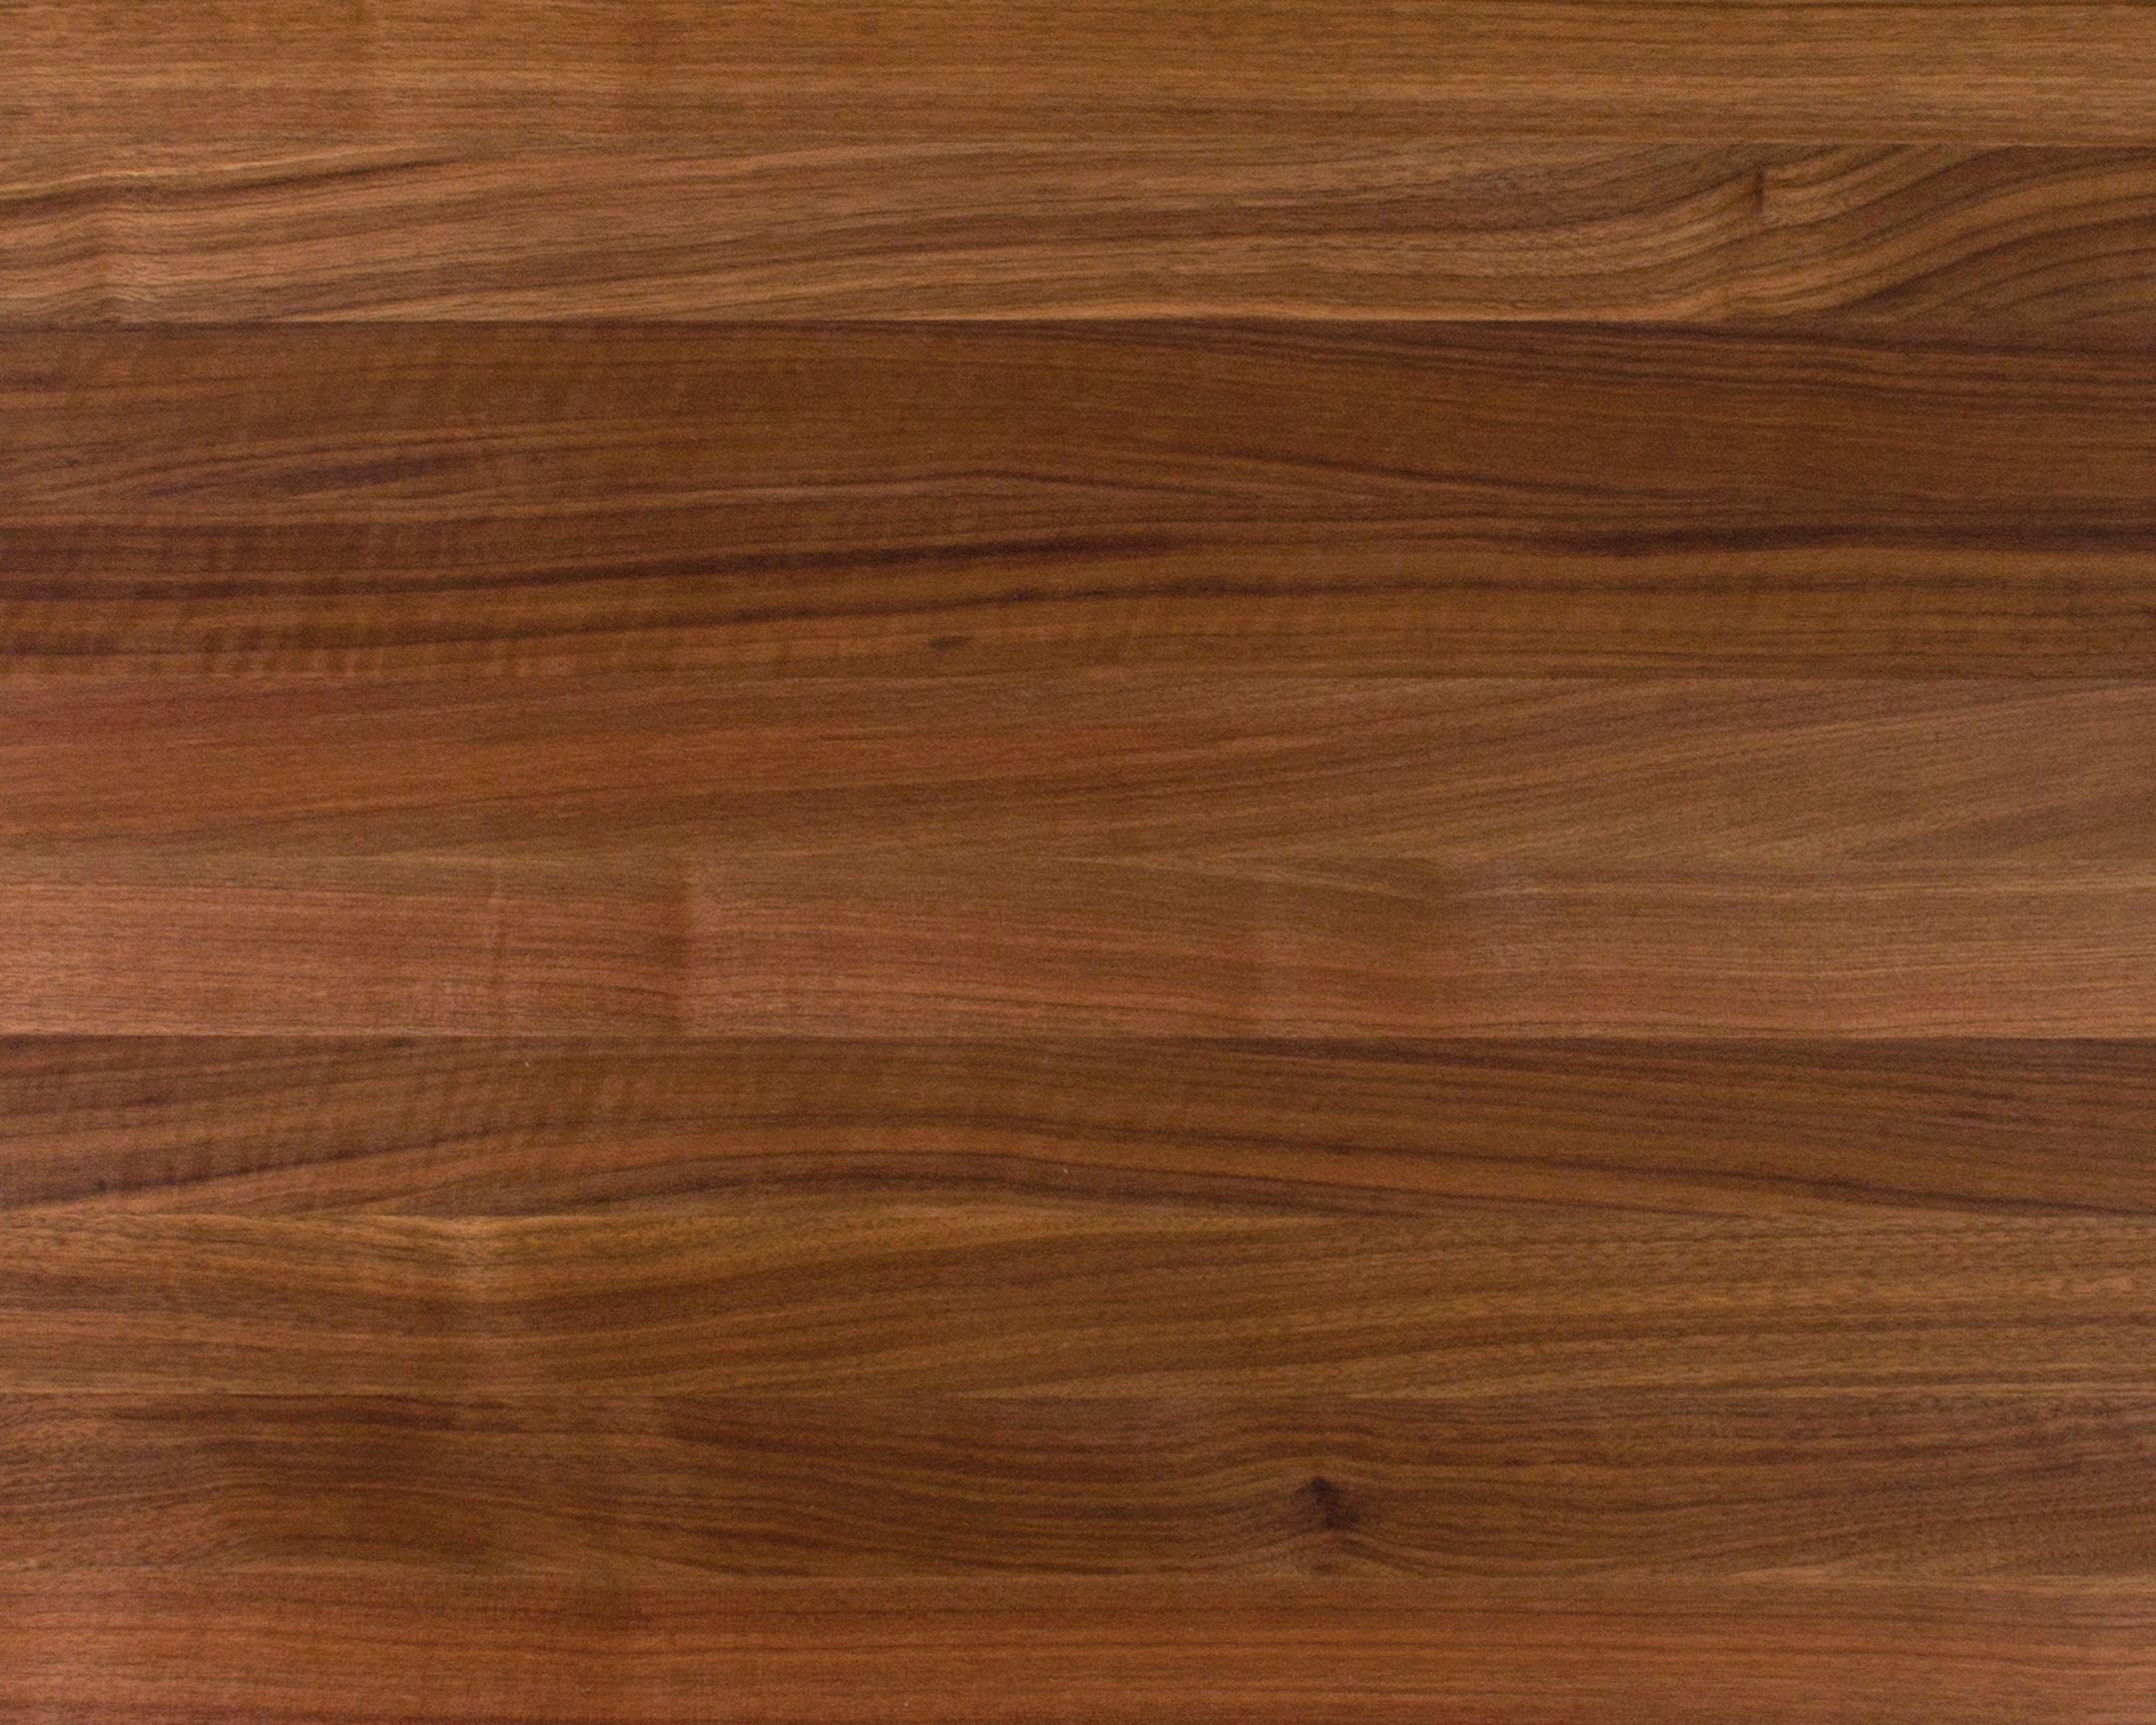 Edge-Grain Walnut Countertops